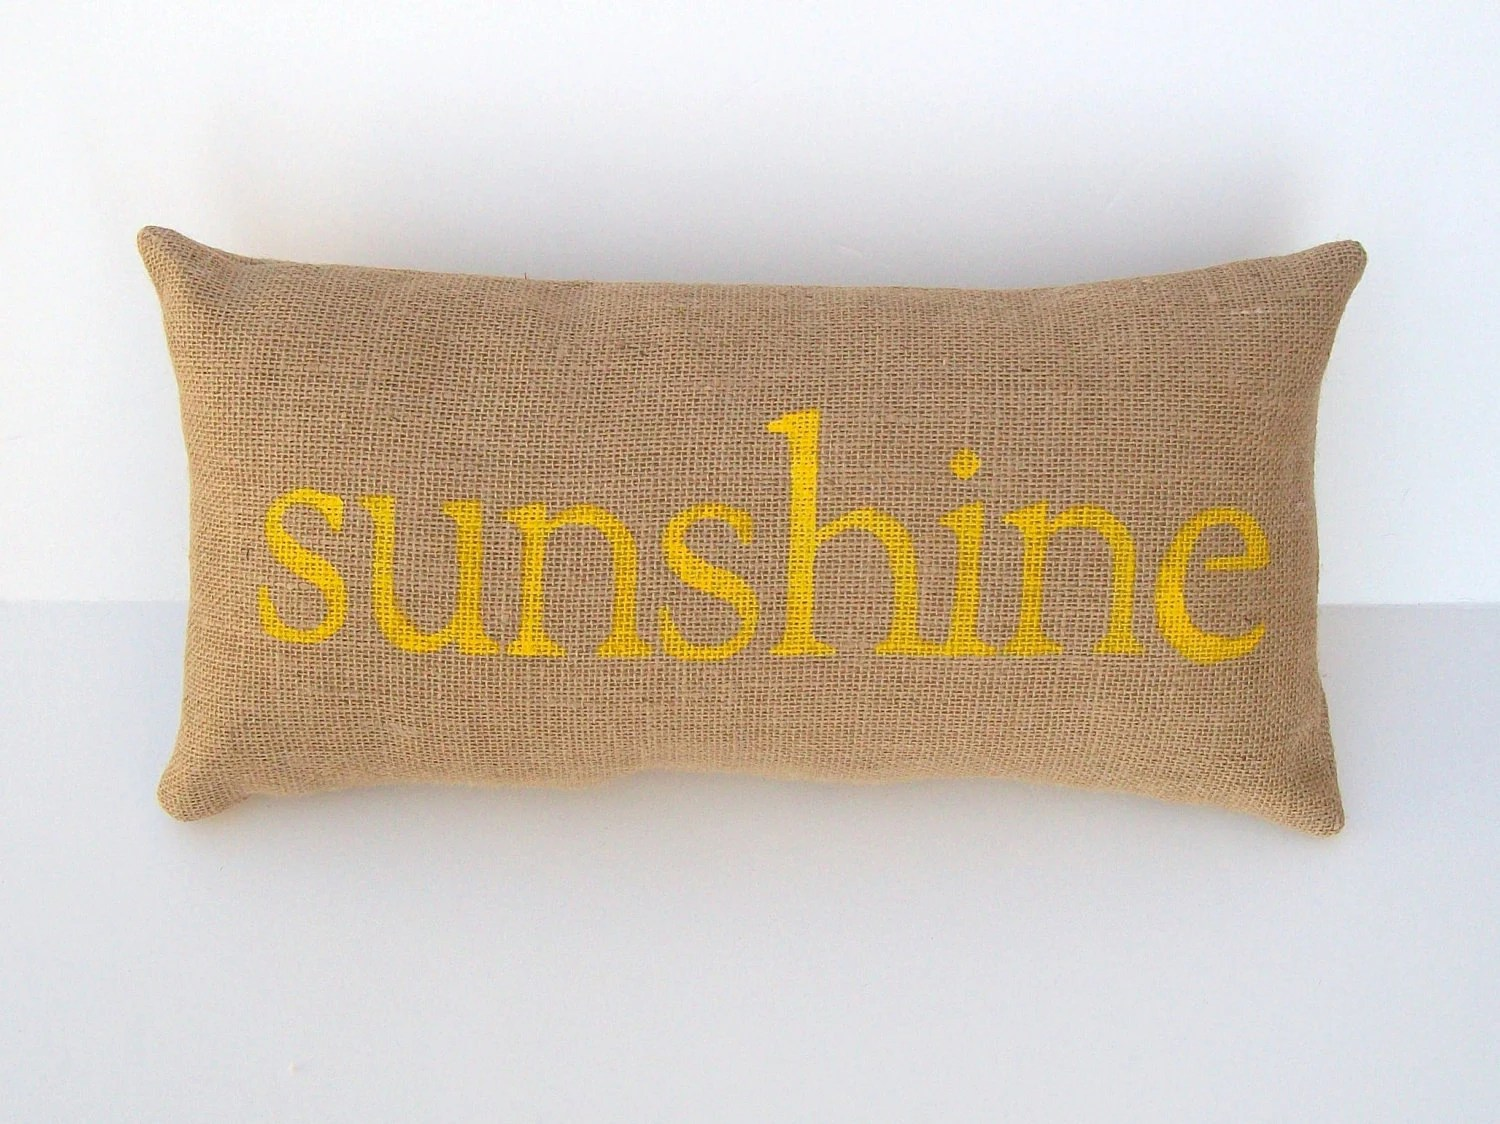 yellow pillow, burlap sunshine yellow pillow, sun, beach house decor, beach theme pillow, home decor, yellow nursery, mother's day gift